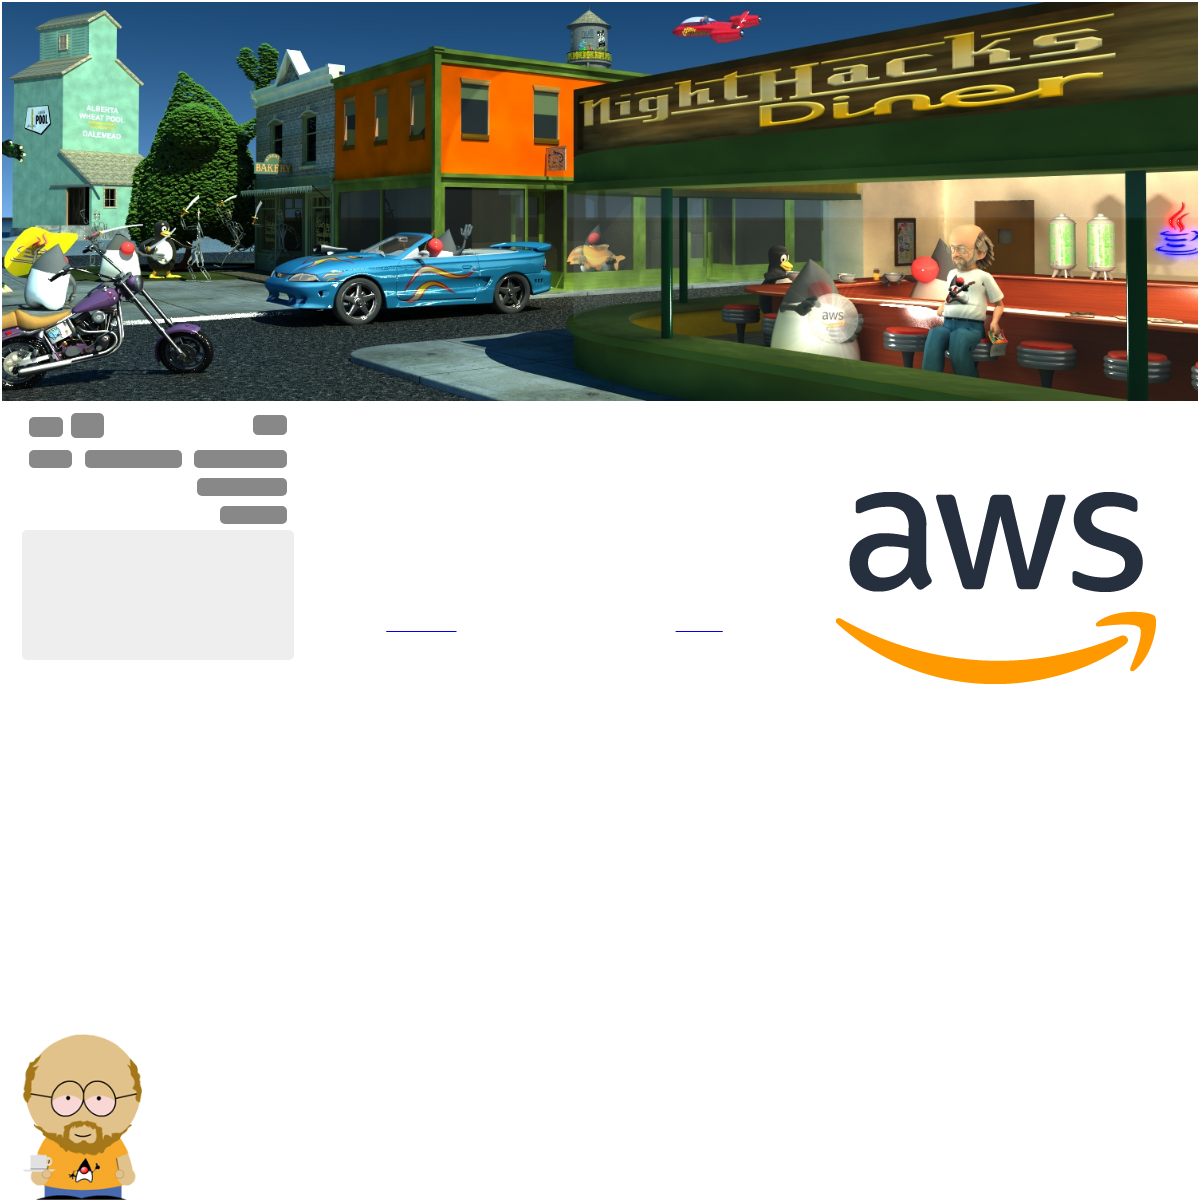 Made the leap to Amazon Web Services!